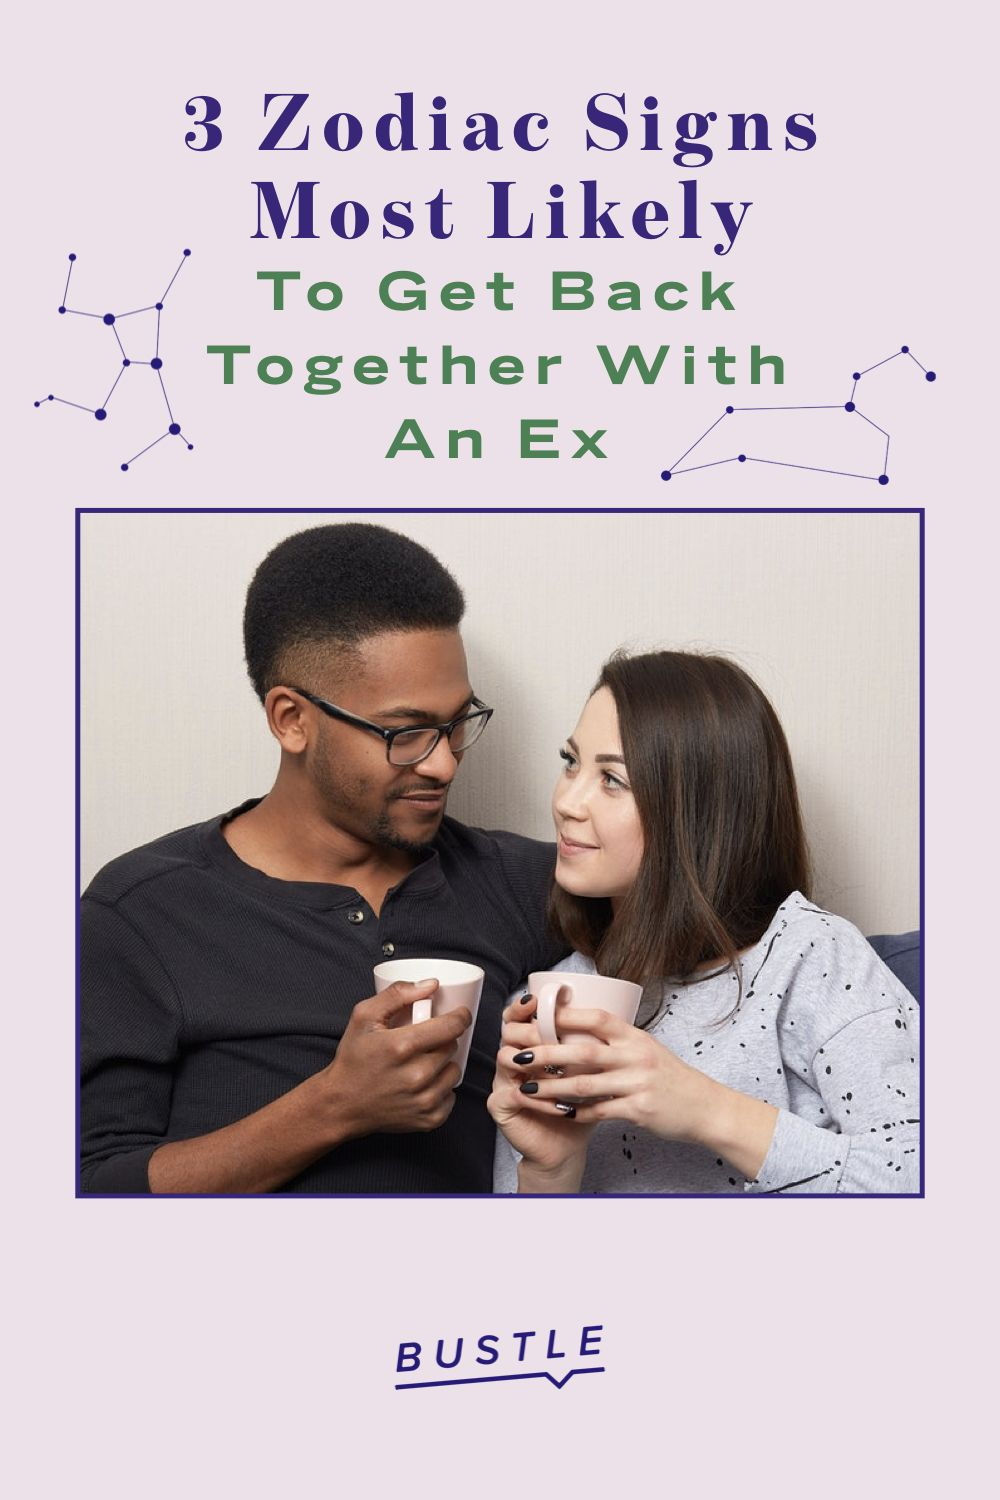 3 Zodiac Signs Most Likely To Get Back Together With An Ex